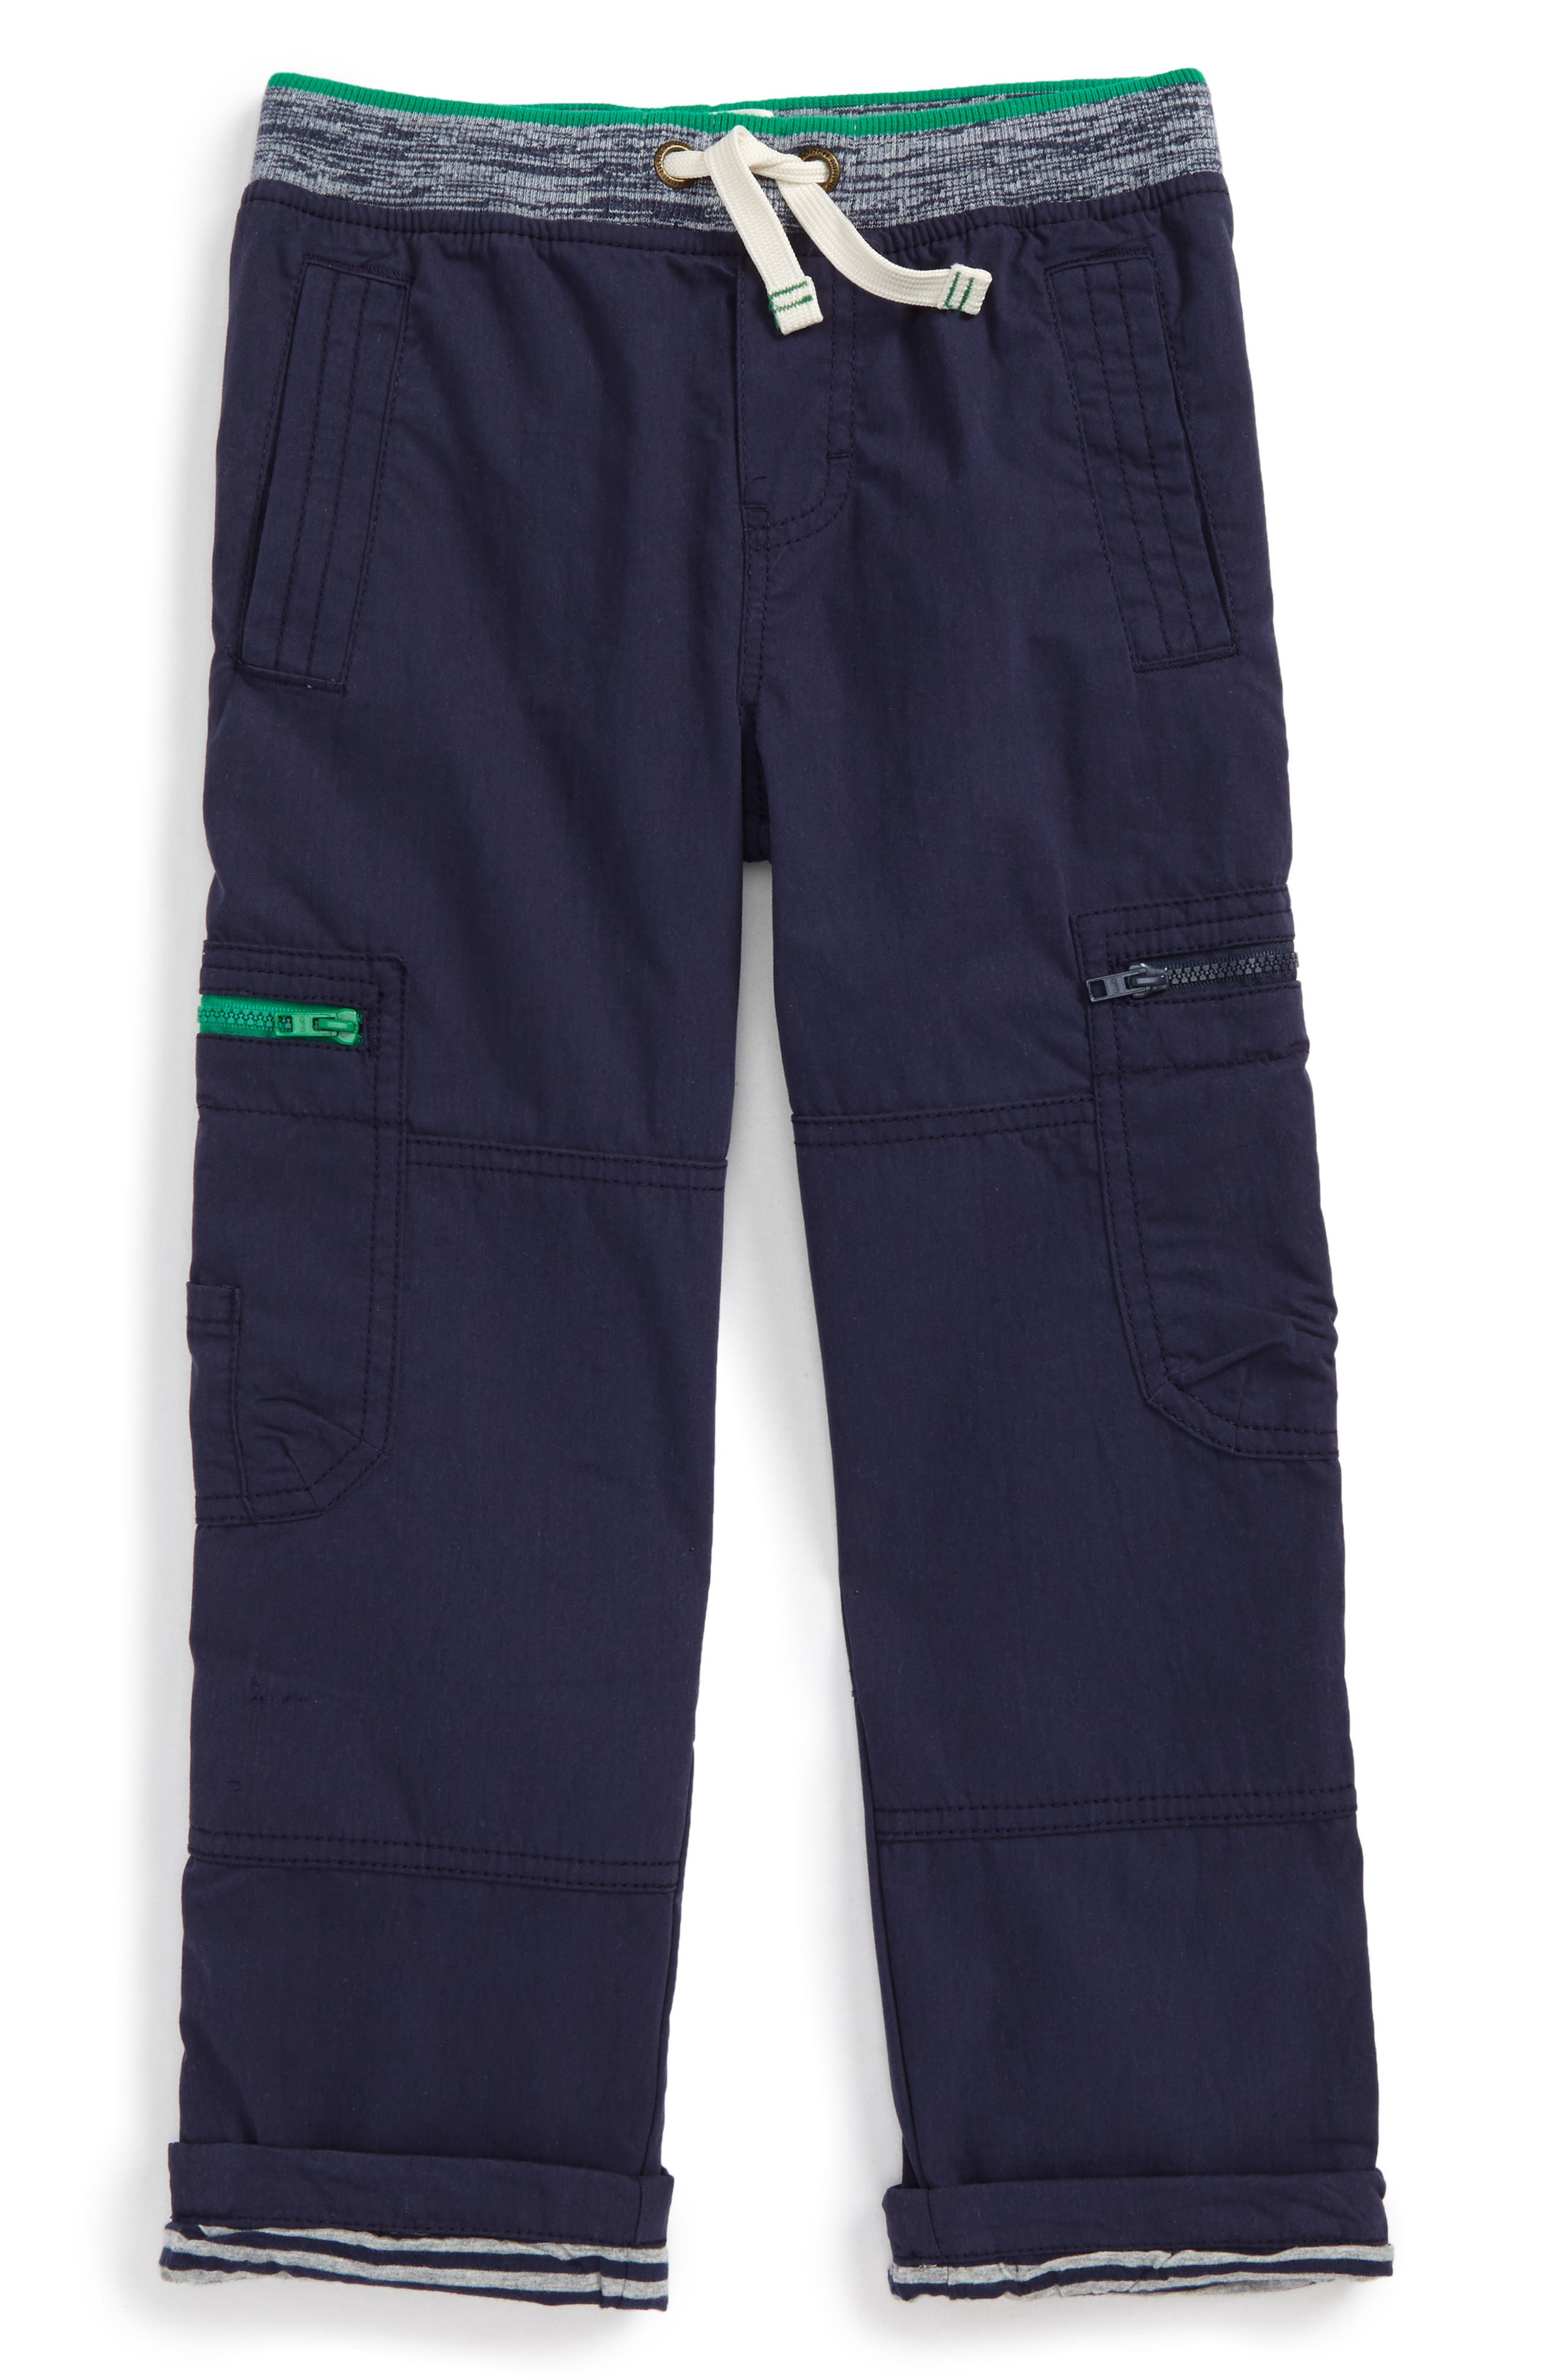 Main Image - Mini Boden Lined Cargo Pants (Toddler Boys, Little Boys & Big Boys)